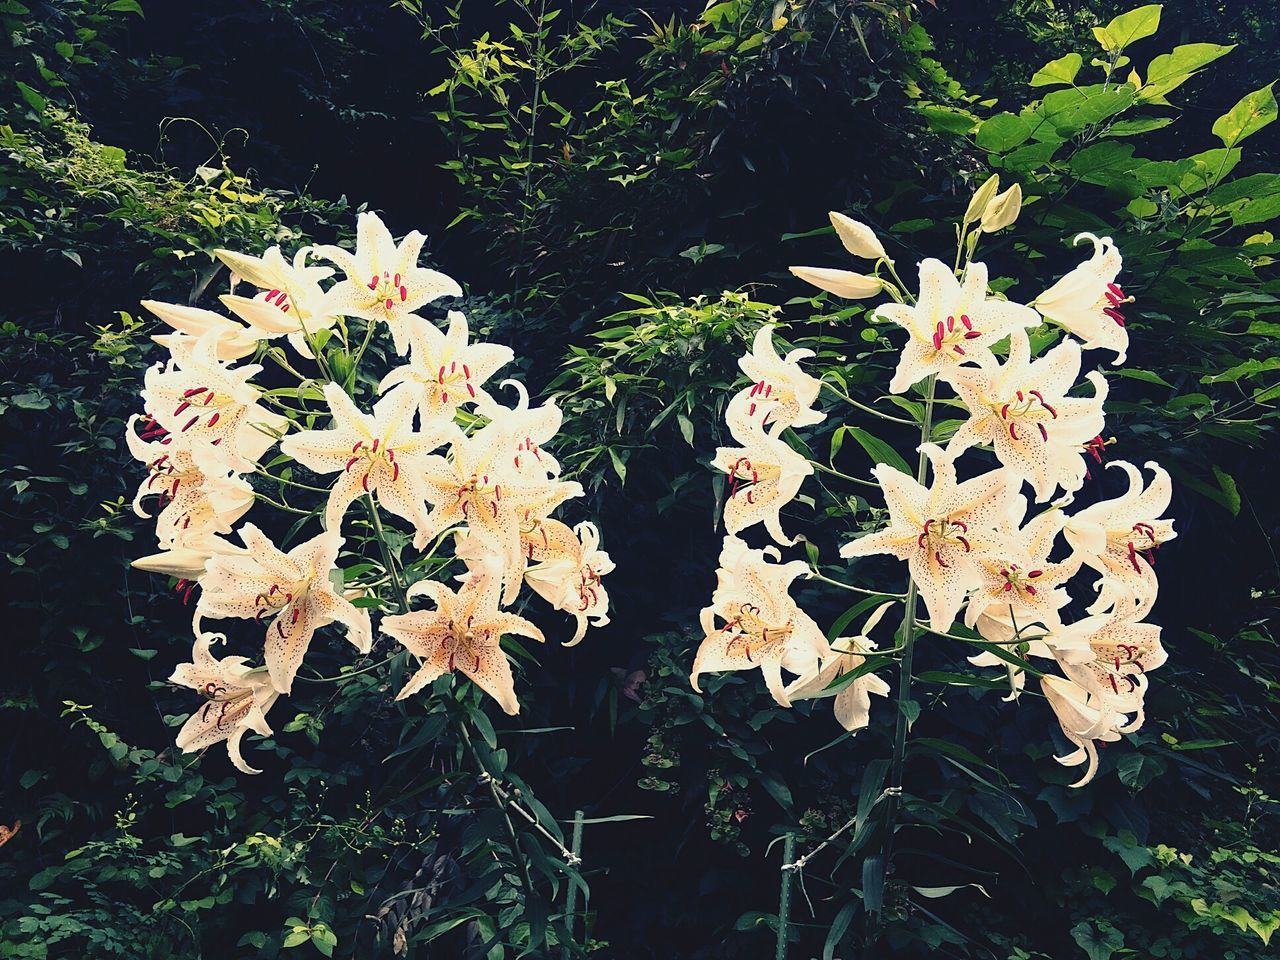 The OO Mission Lilies Summer Ultimate Japan